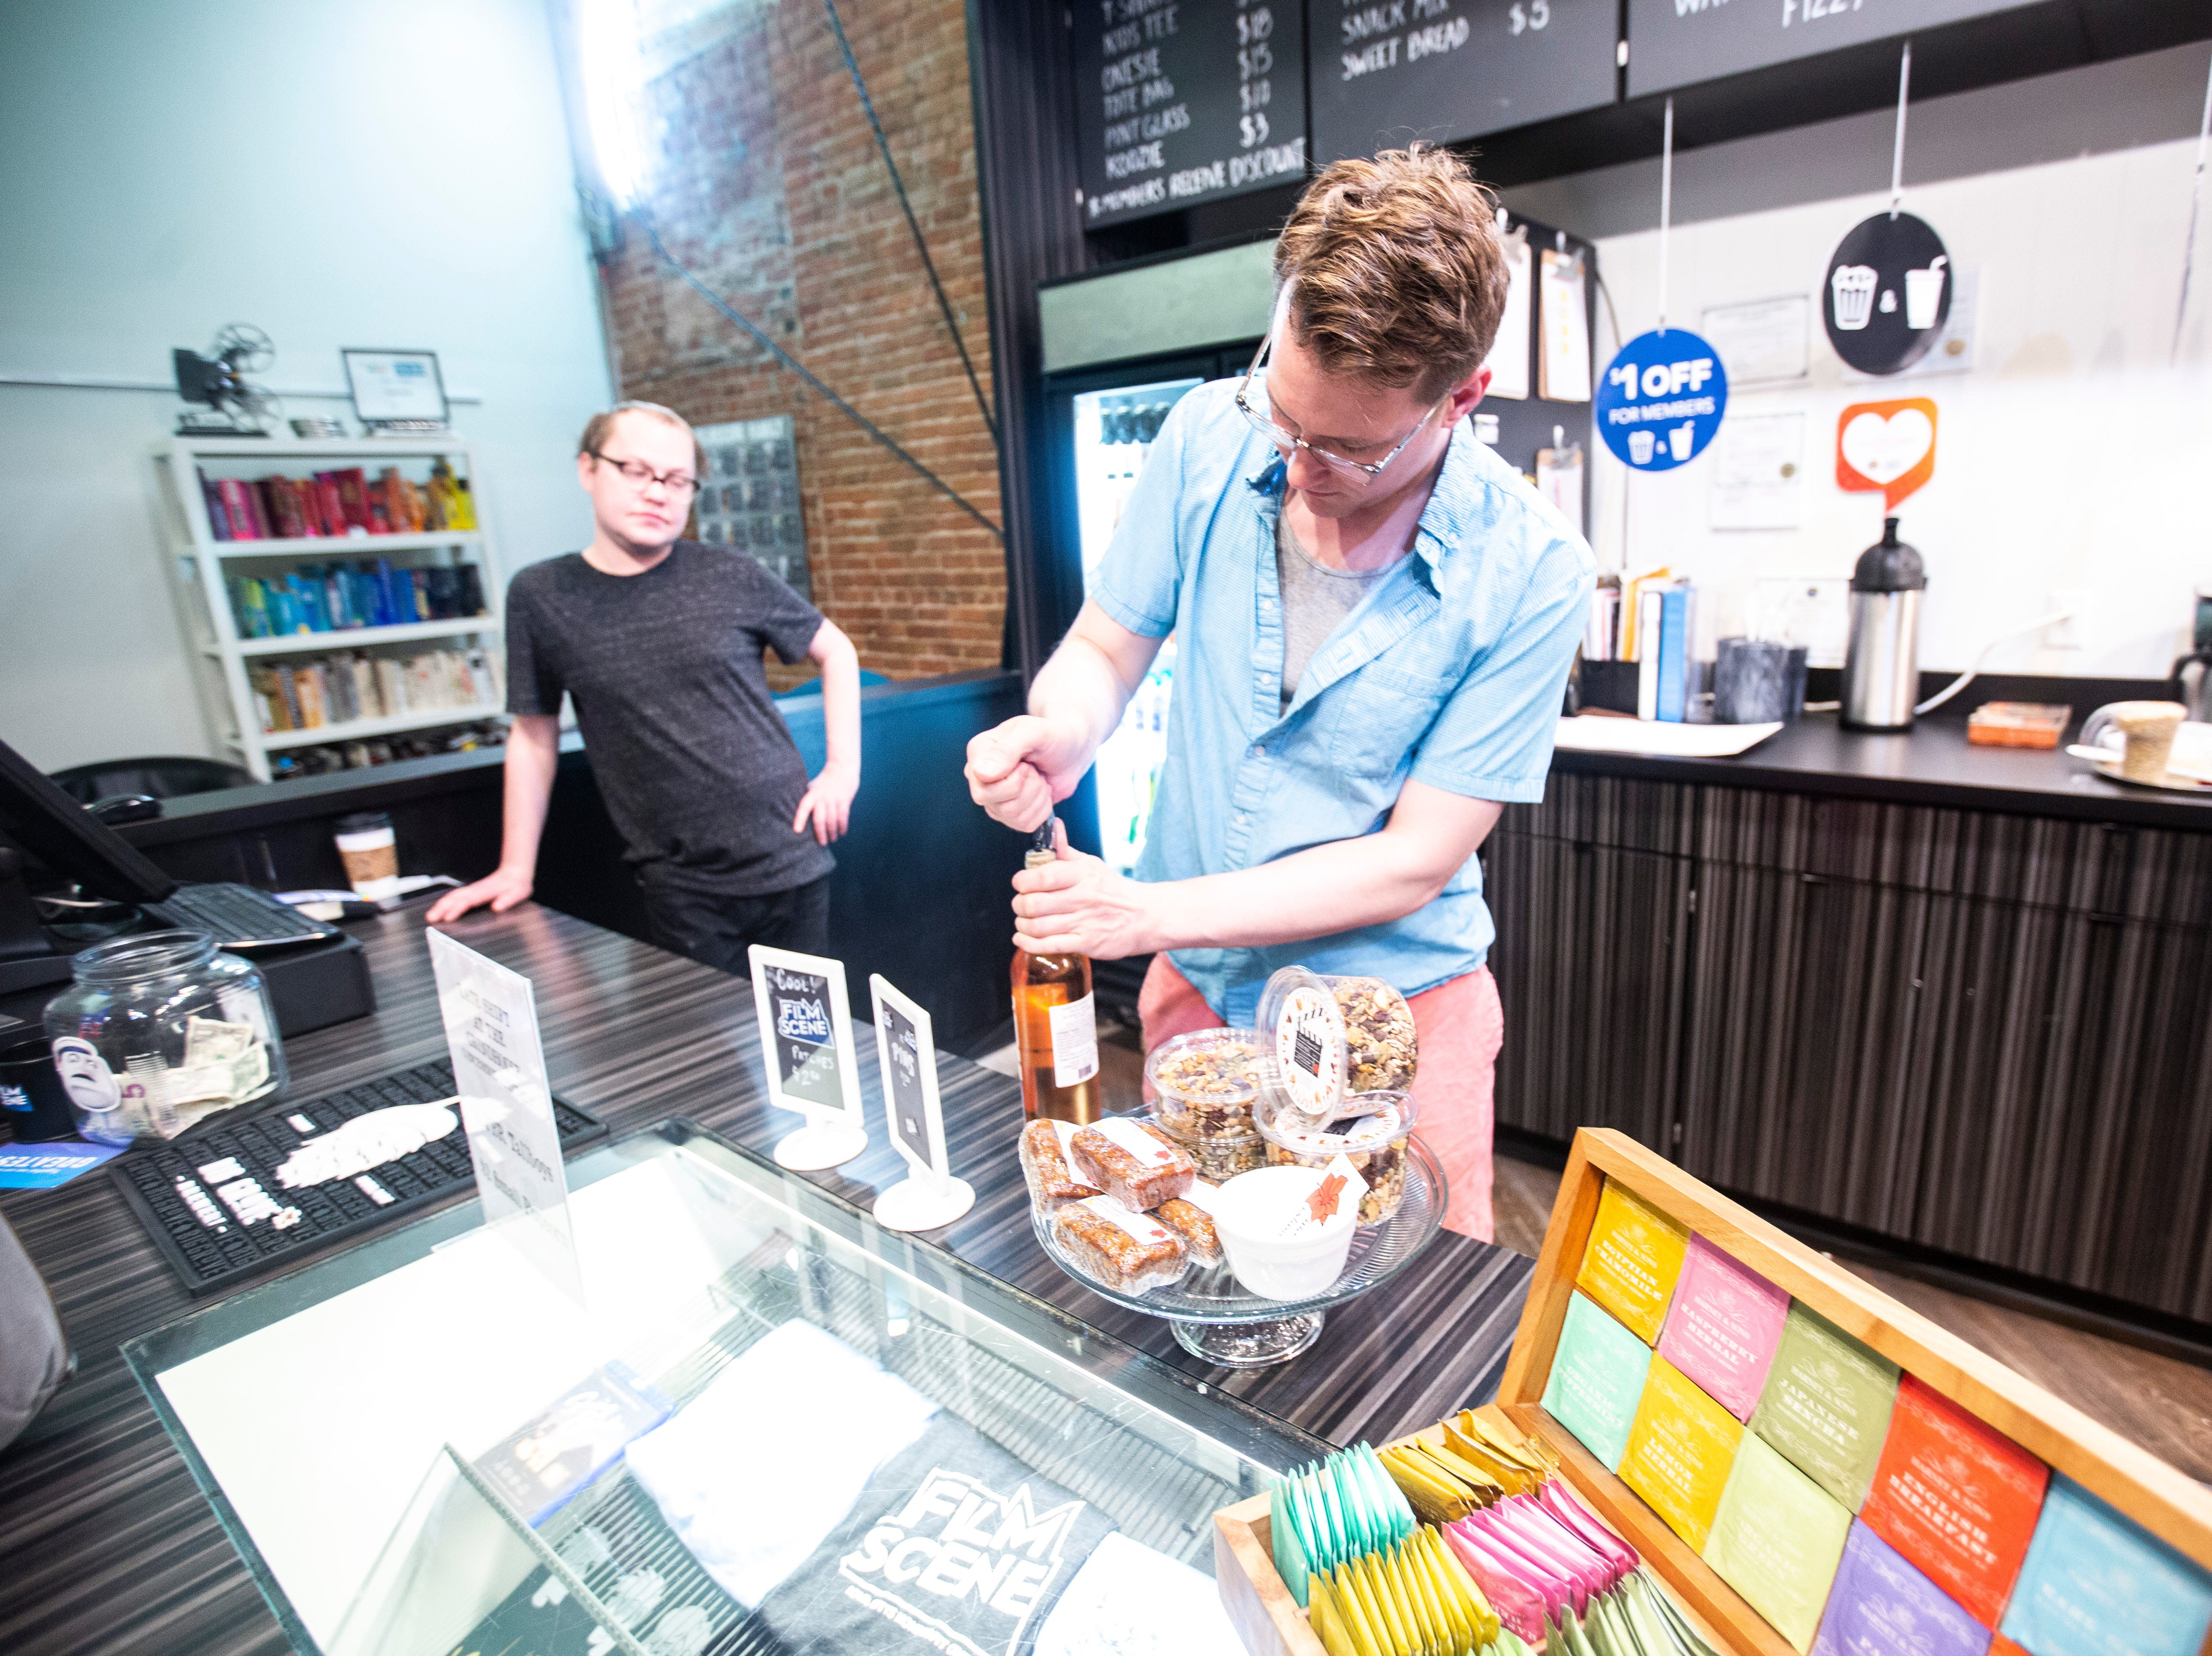 """Aaron Holmgren, assistant operations manager, opens a bottle of wine during a """"Late Shift at the Grindhouse"""" movie screening, Wednesday, April 17, 2019, at FilmScene in Iowa City, Iowa."""